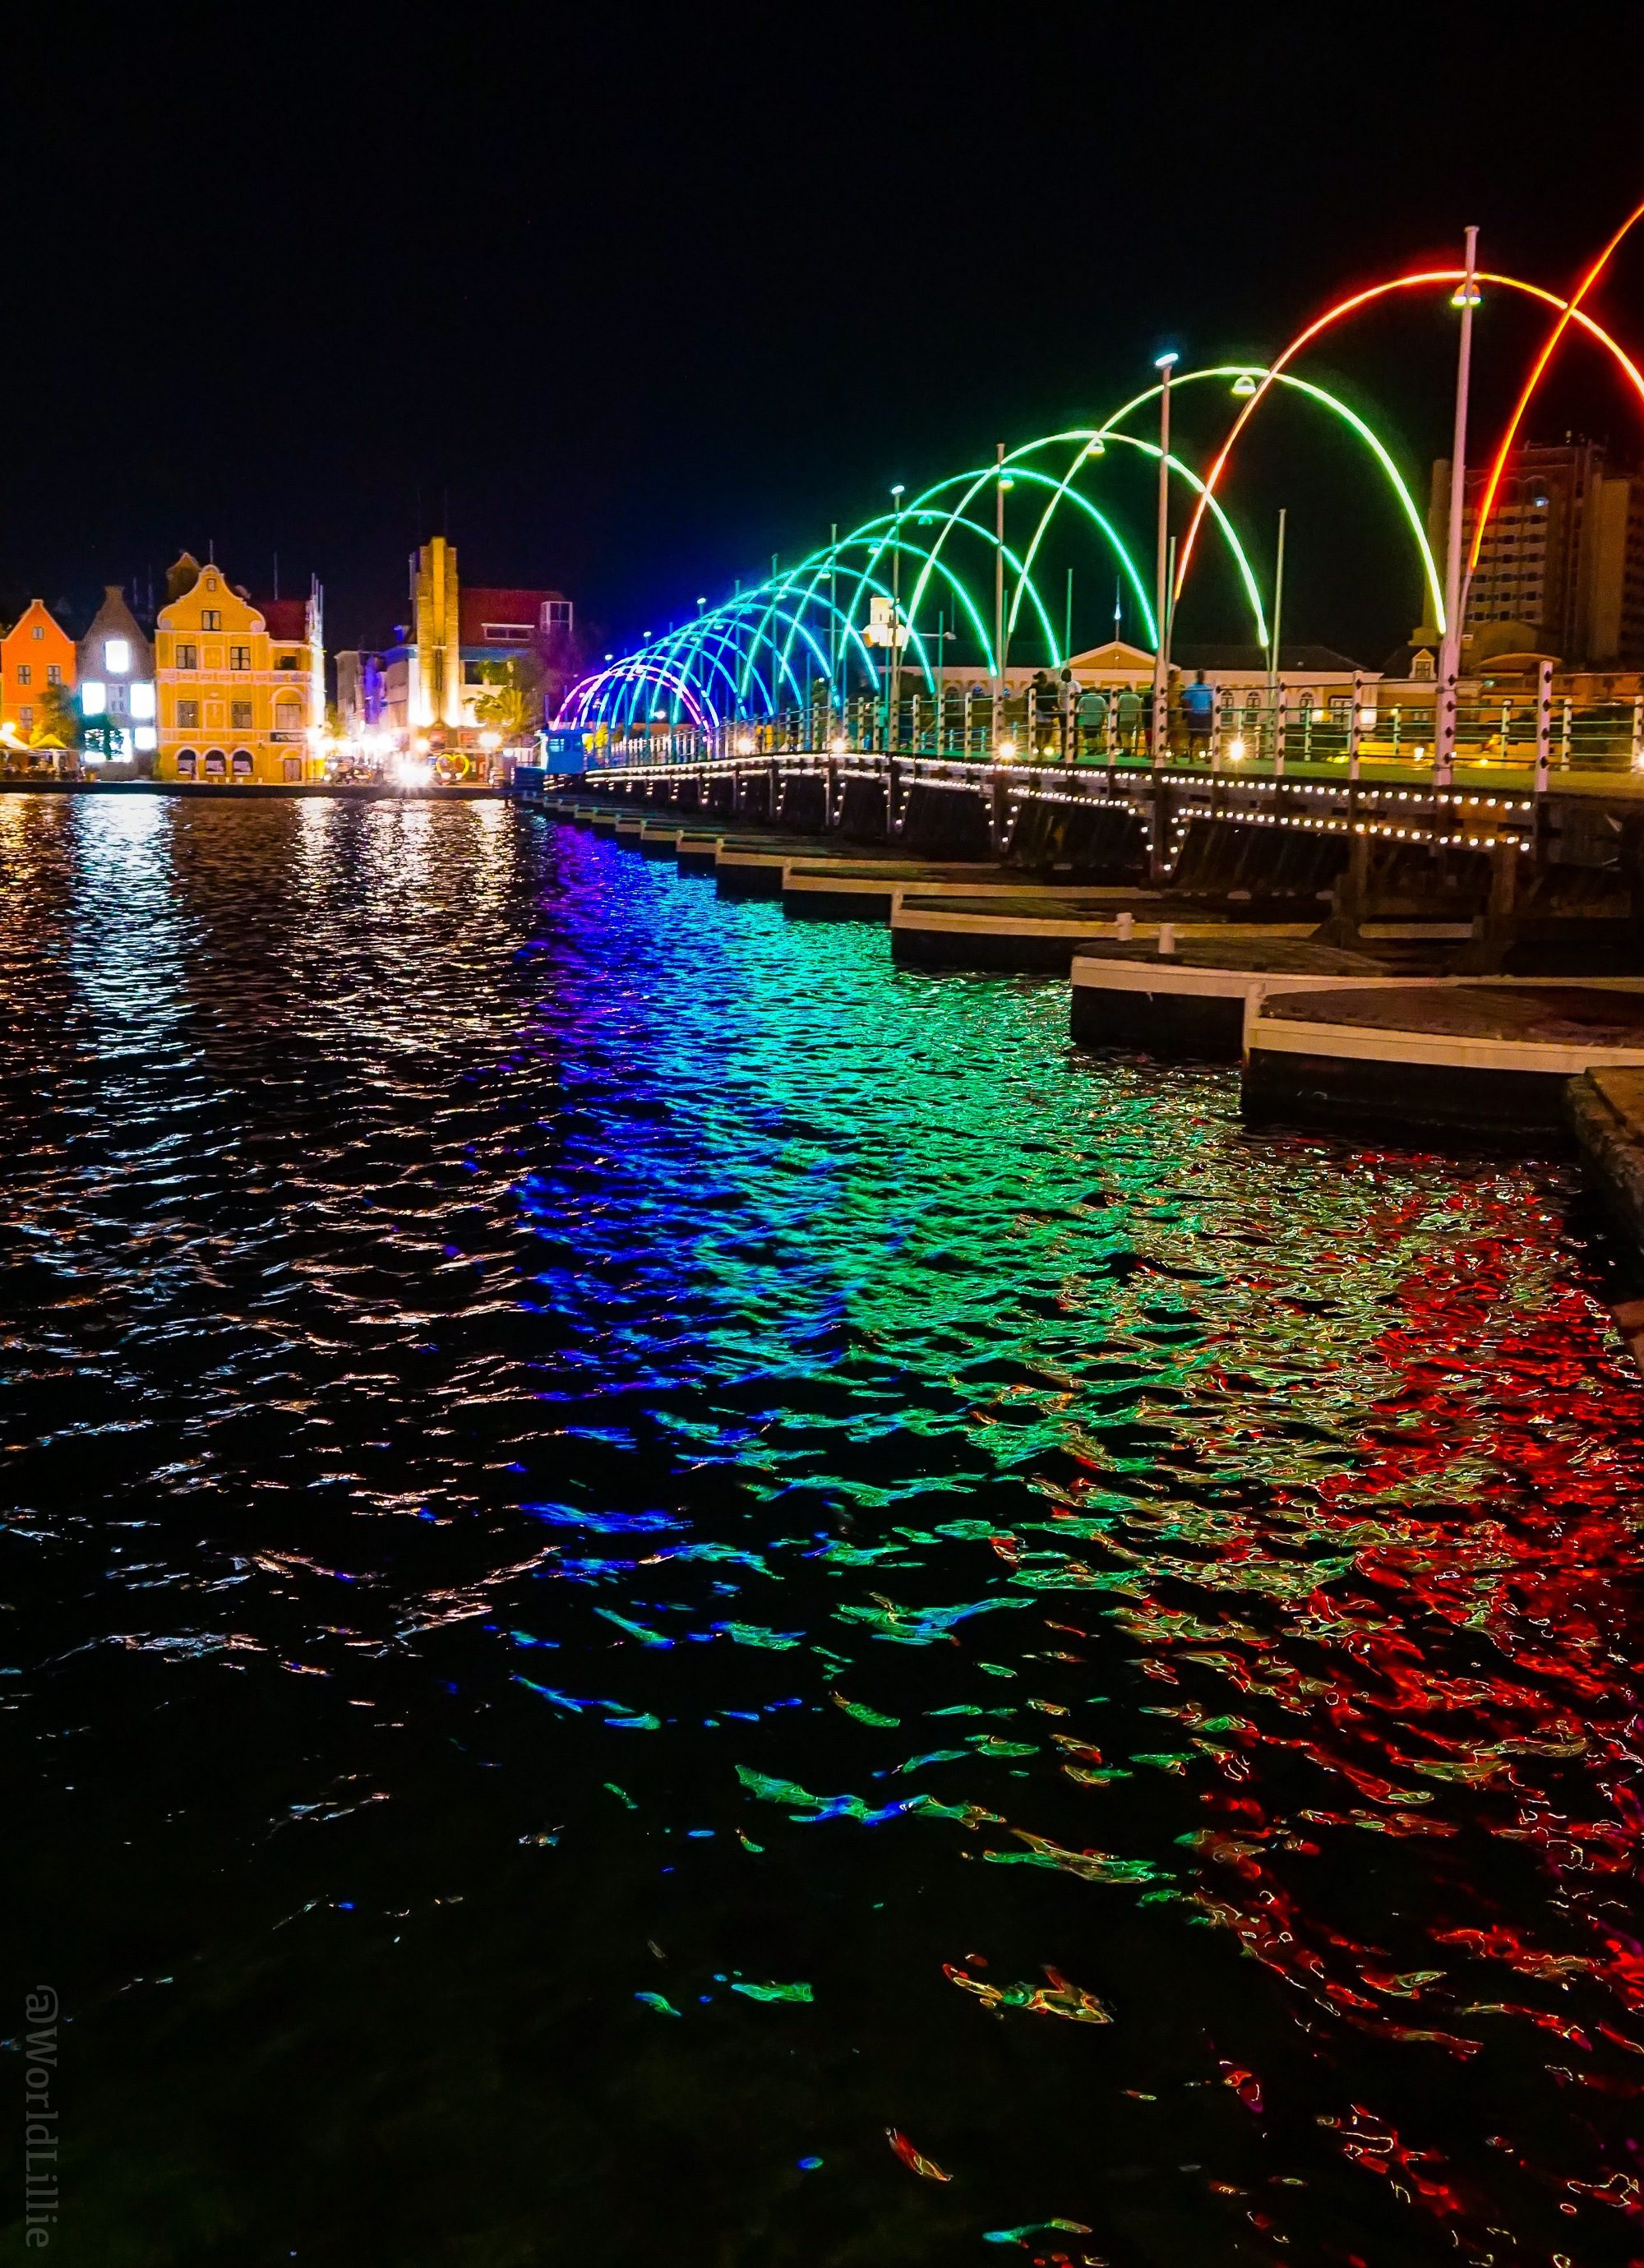 The Queen Emma Floating Bridge in Willemstad, Curacao, is a gorgeous floating rainbow!